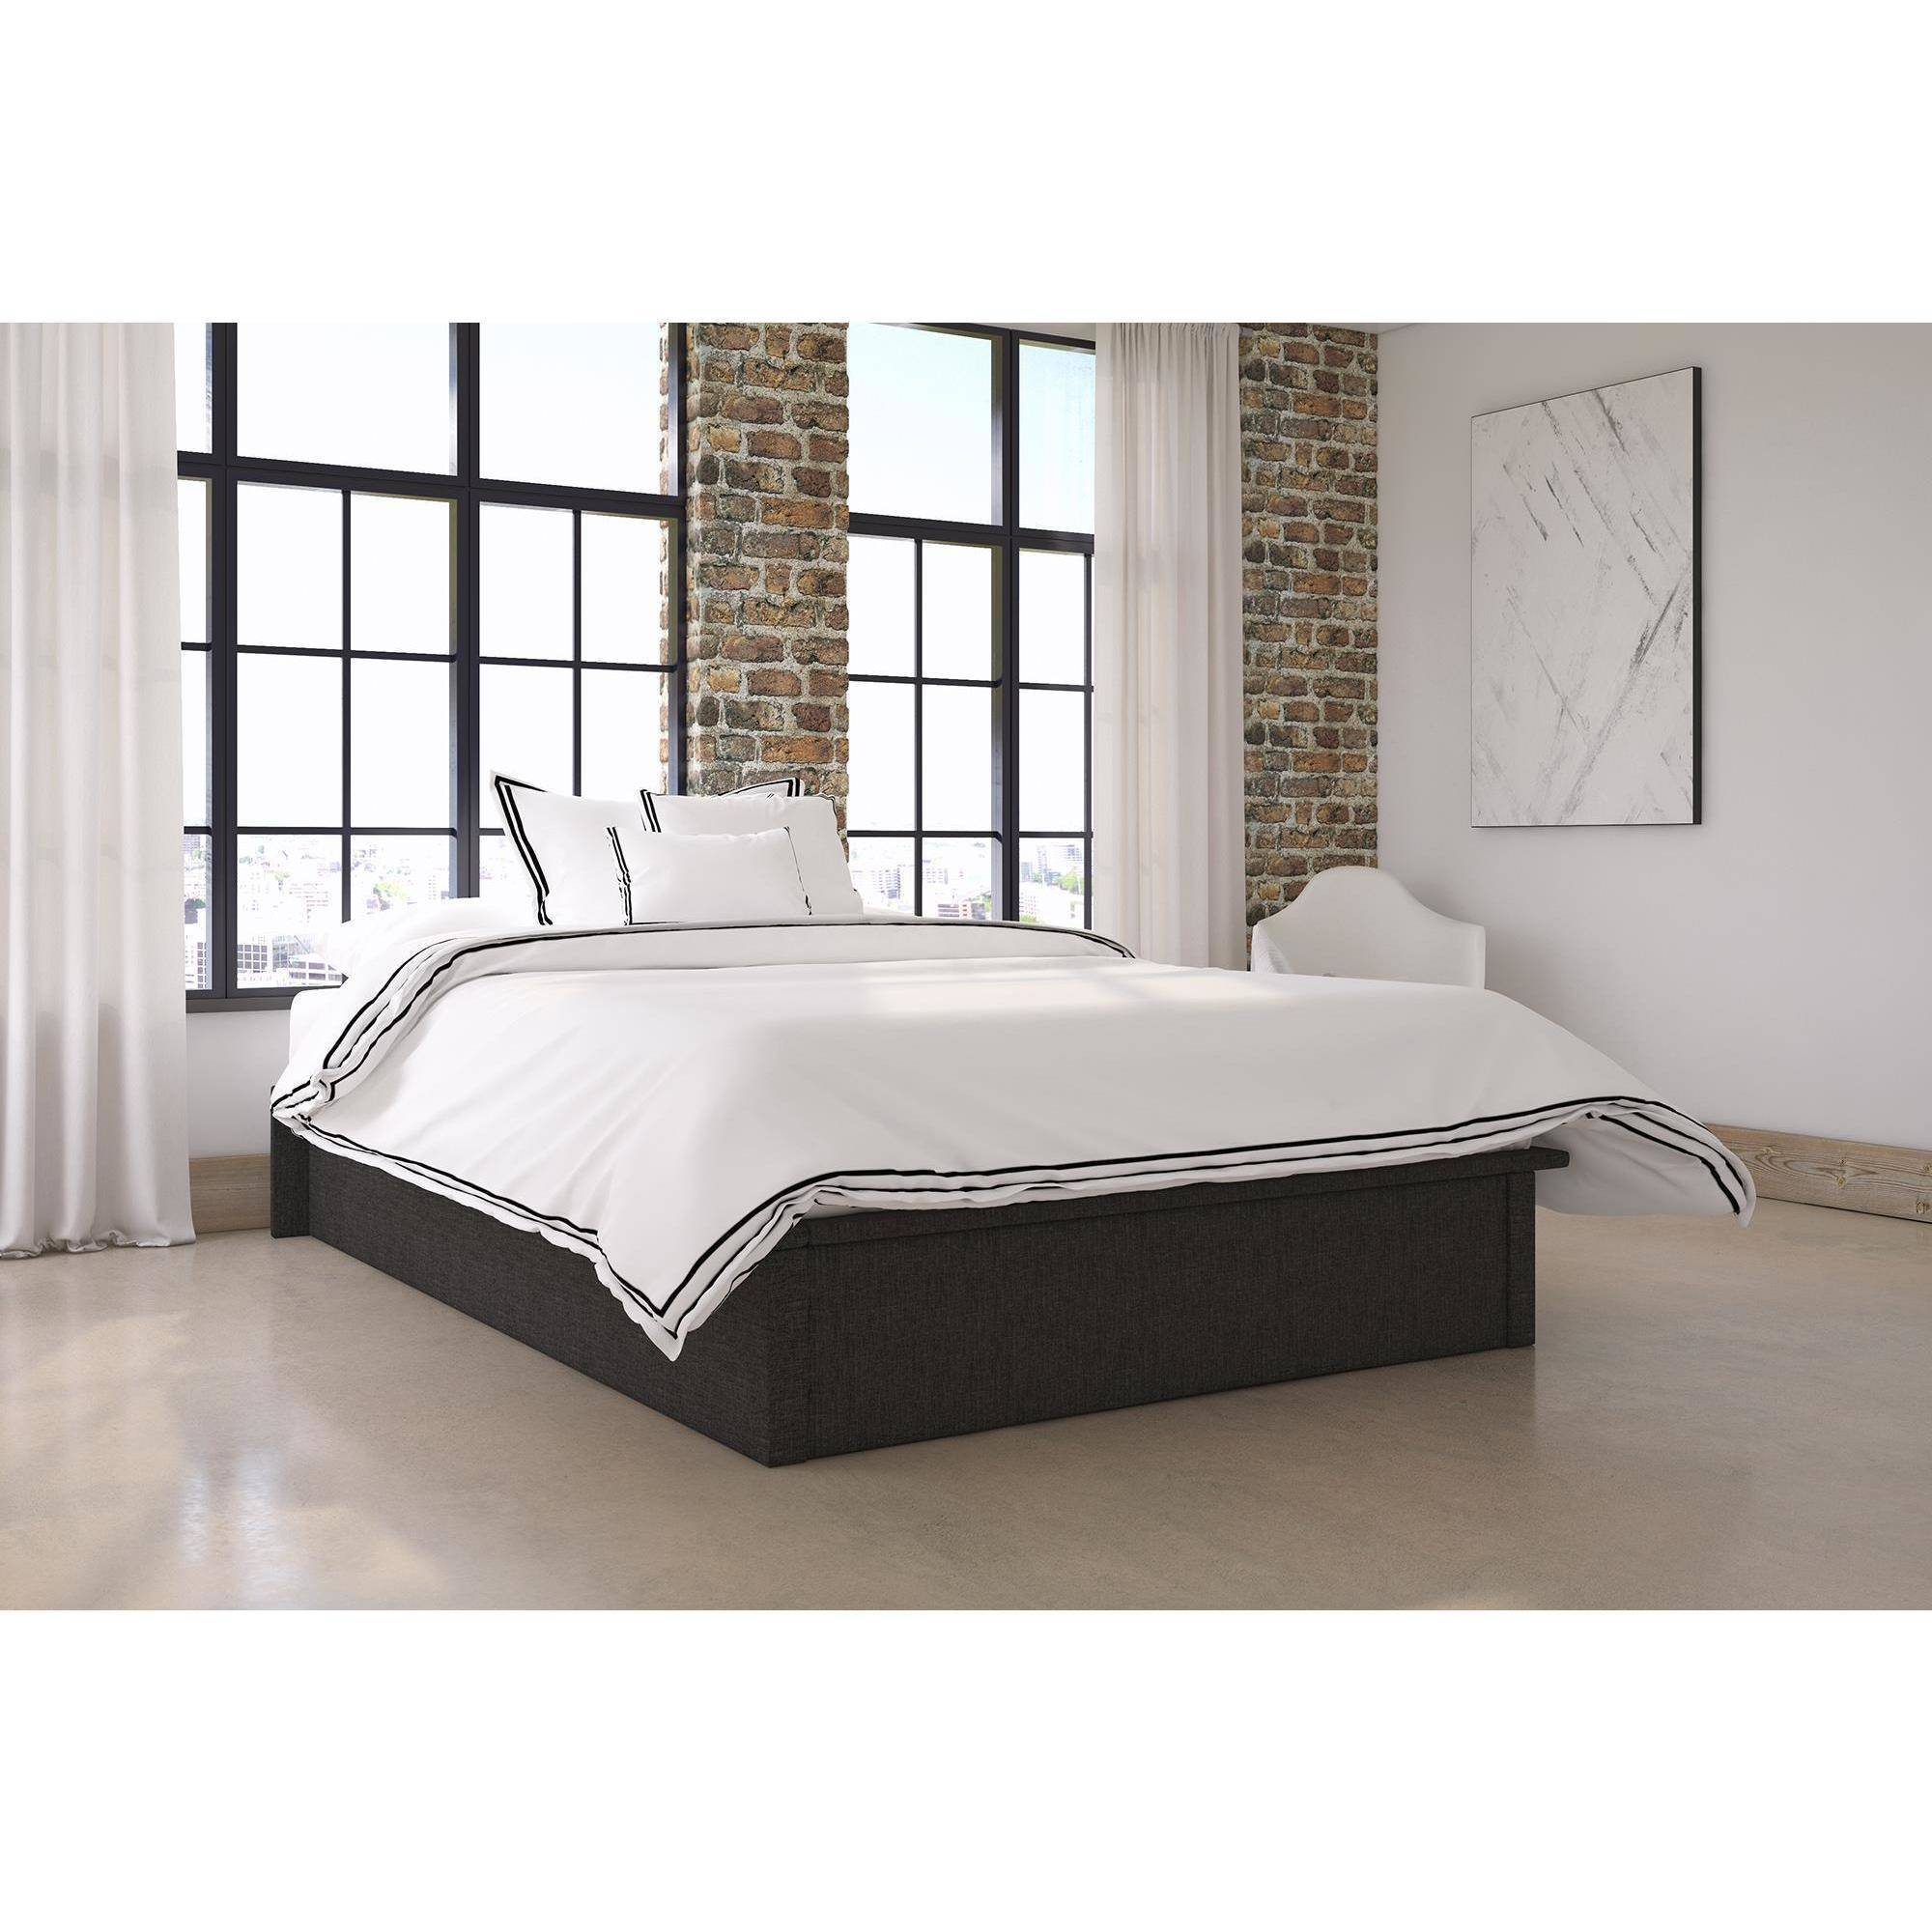 DHP Maven Platform Bed with Upholstered Faux Leather and Wooden Slat Support, Multiple Sizes and Colors by Dorel Home Products